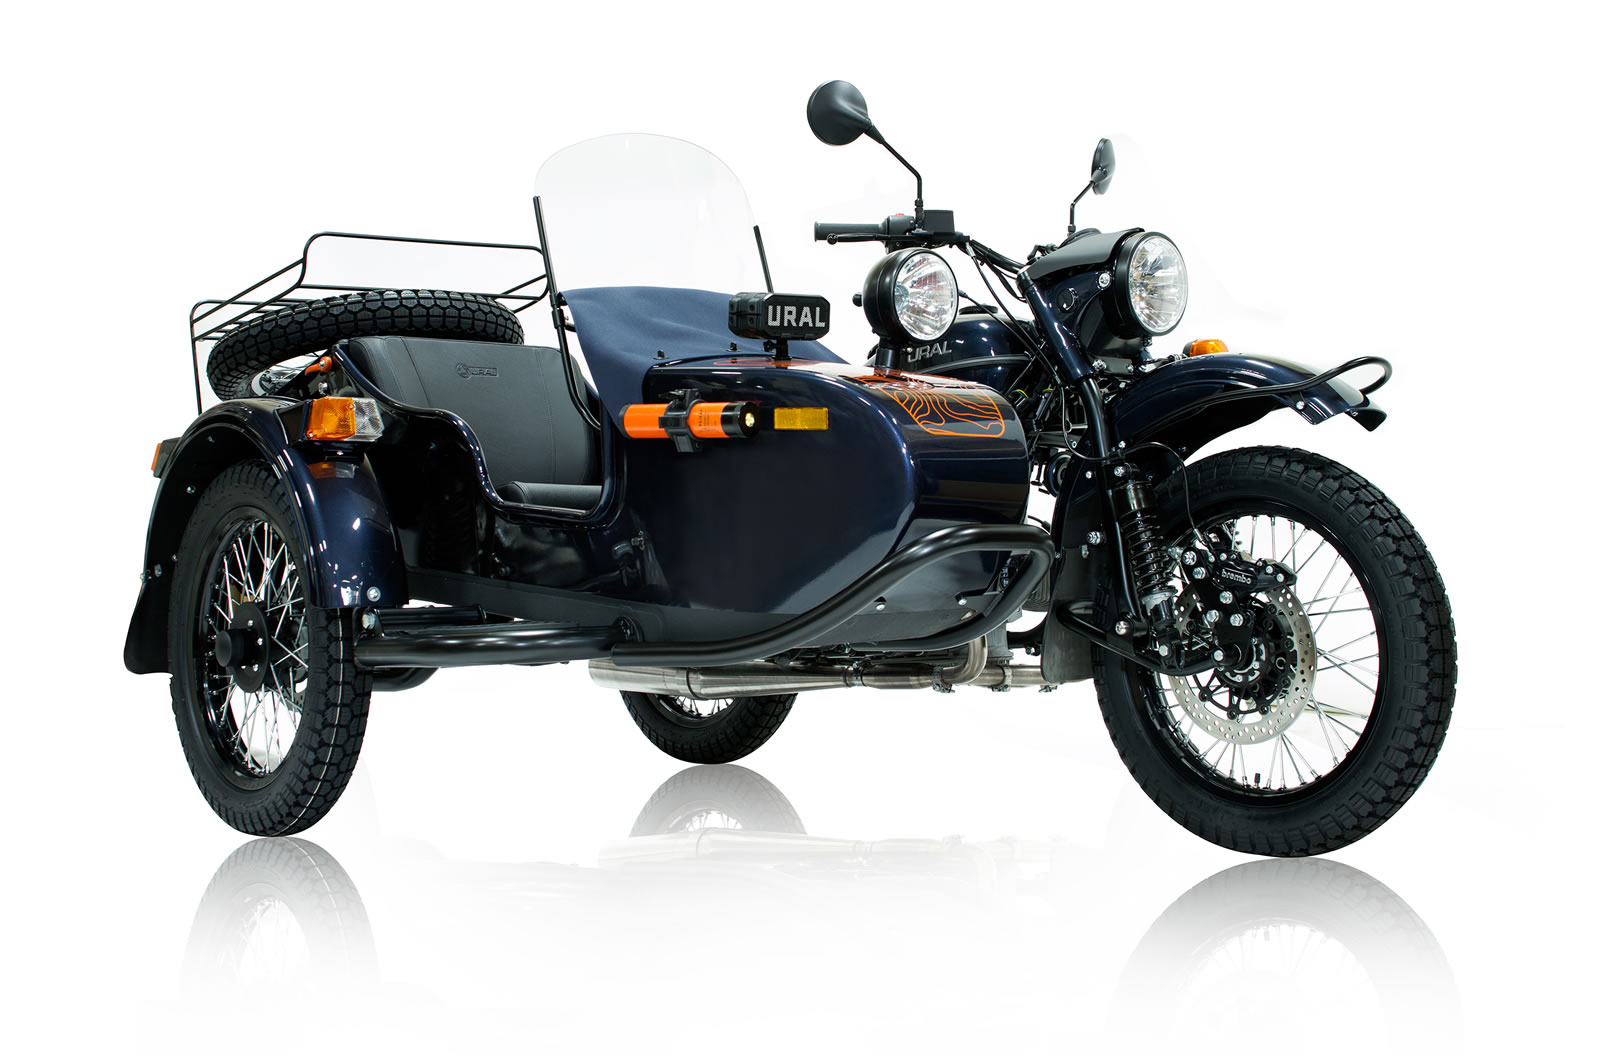 Ural Baikal – Another Motorcycle for the Unimog and Land Rover Crowd